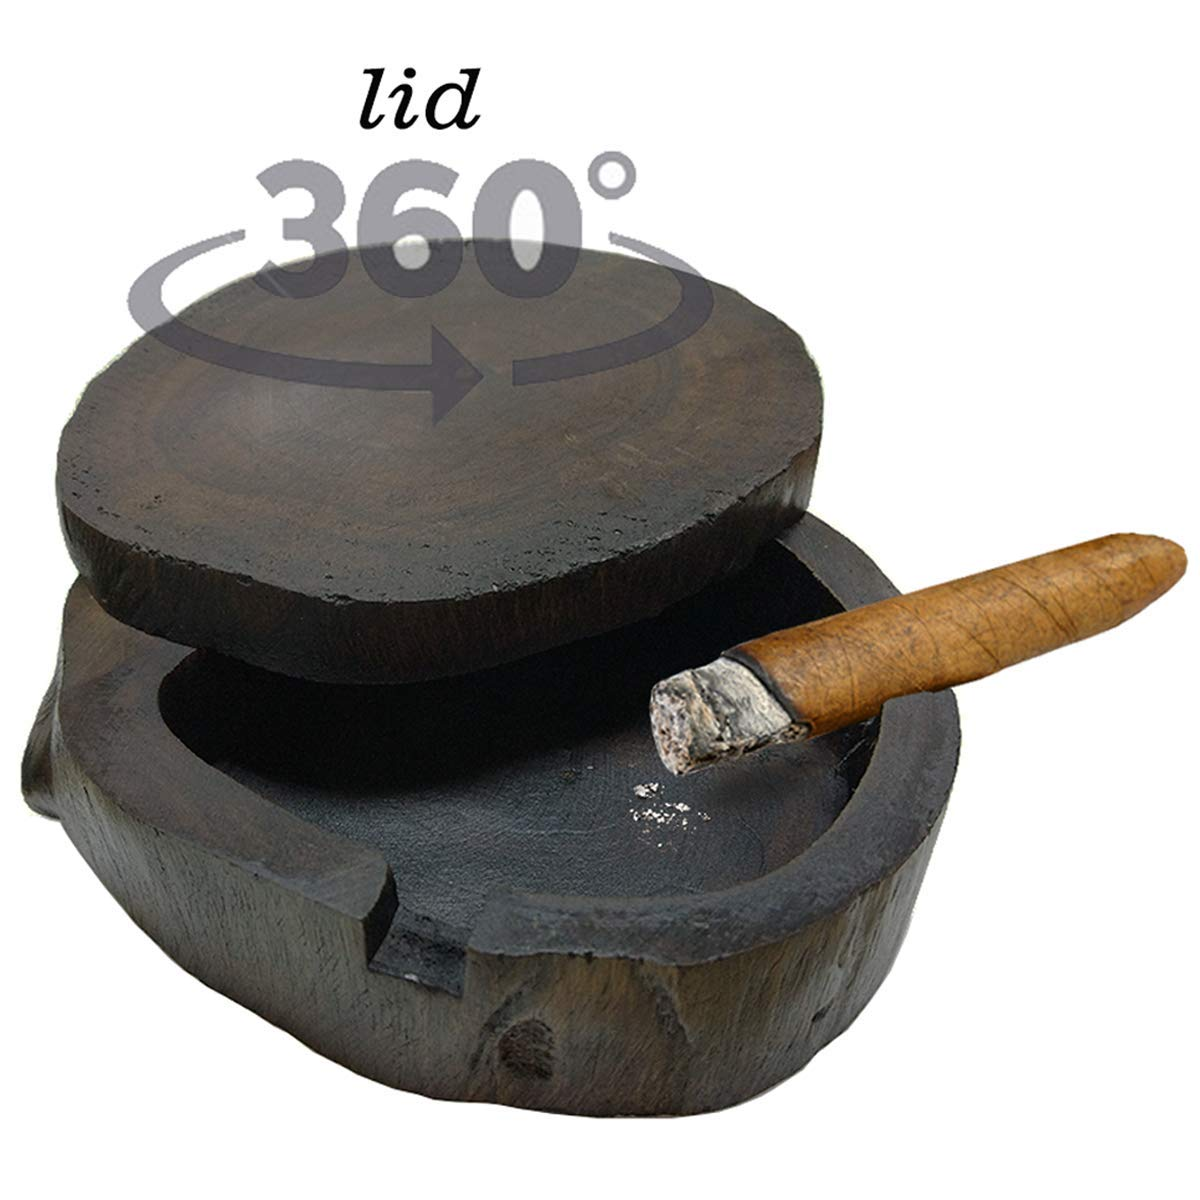 Camlinbo Outdoor Wood Cigar Ashtray with 360 Spinning Lid for Patio,Handmade Ashtray and 3 Cigarettes Holders Decorative Indoor Home Bar Table Top Smokeless Ashtray for Men Gifts (Wood ciagr Ashtray) by Camlinbo